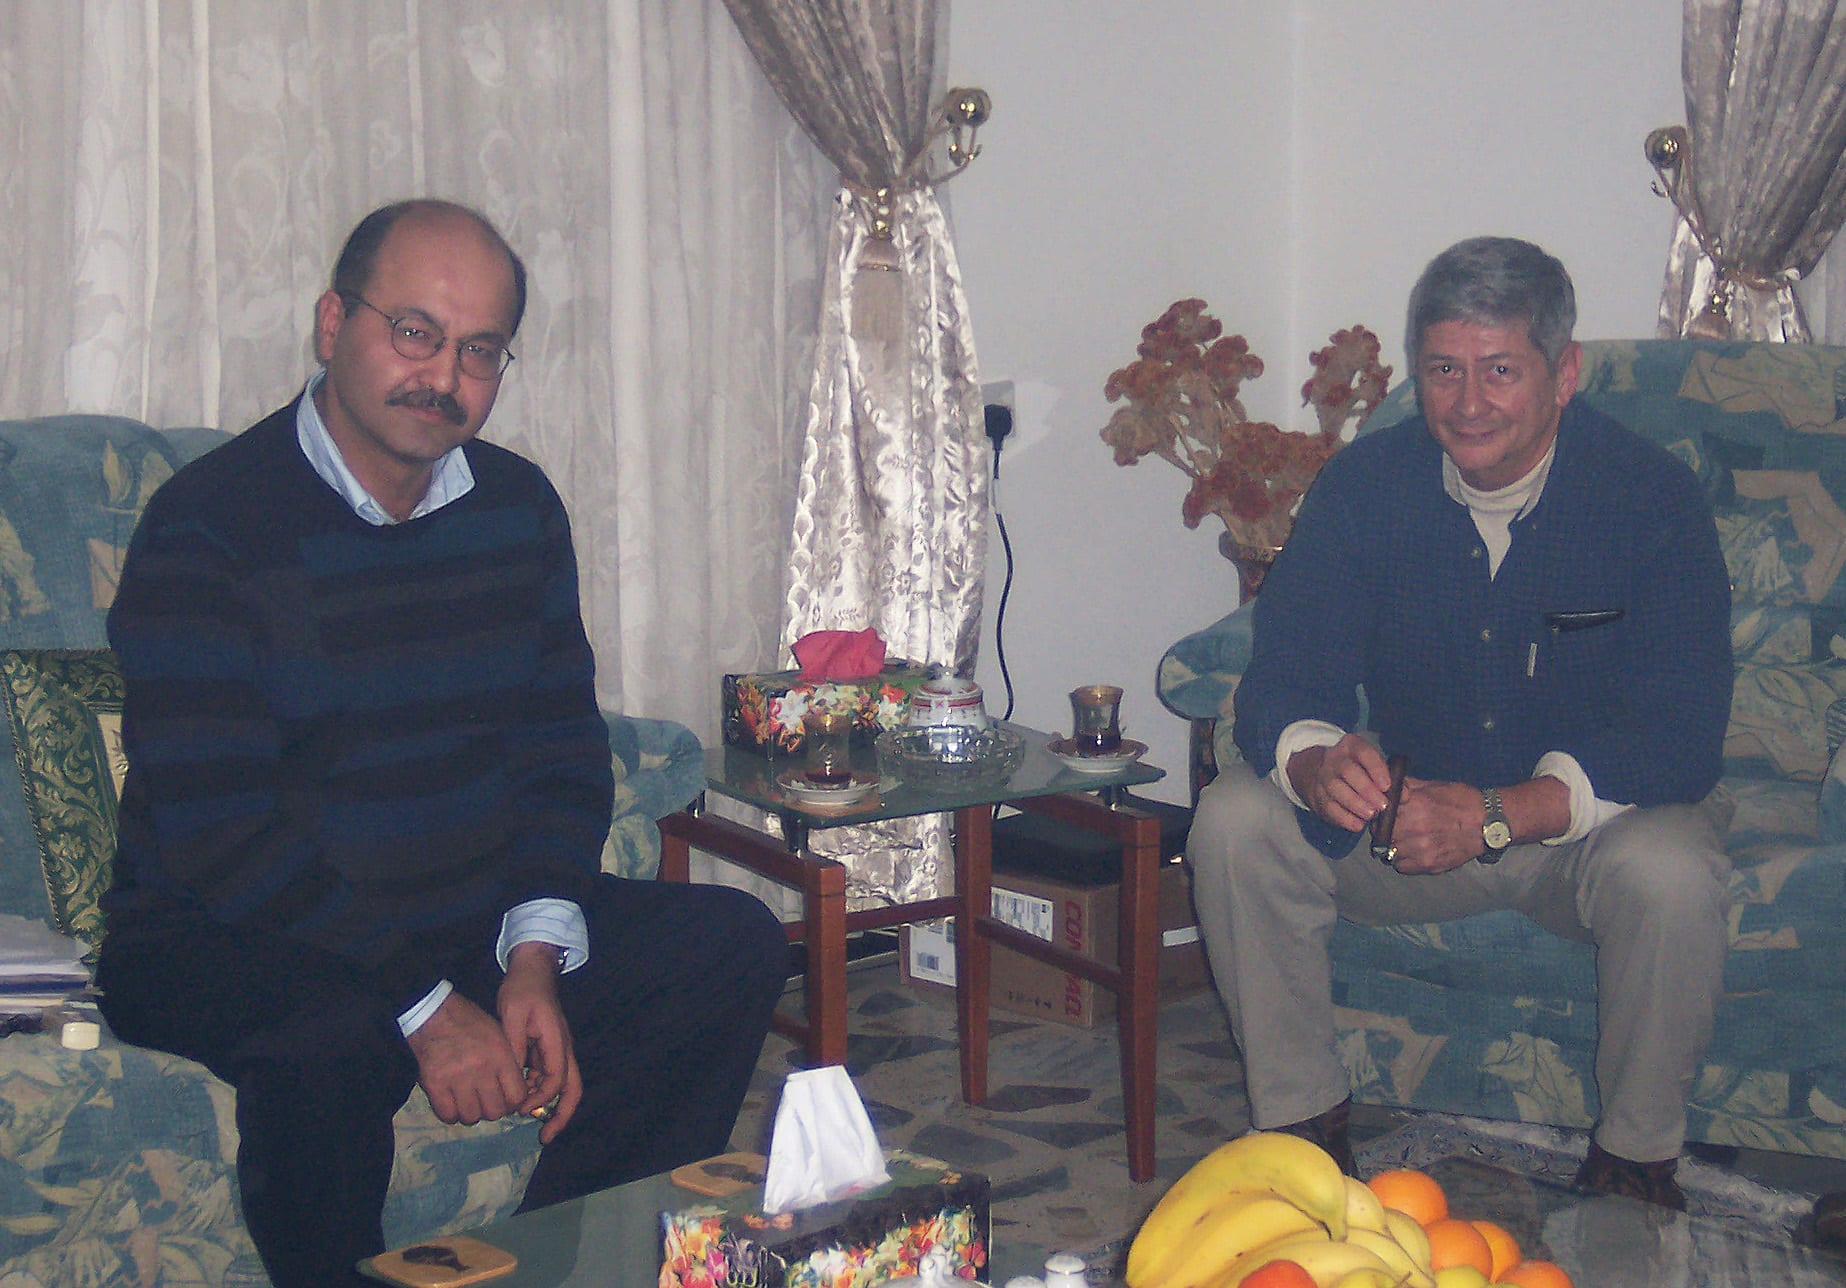 Image Author Col. Norvell DeAtkine (rt) Meeting with Kurdish leader Barham Salih, now President of Iraq.